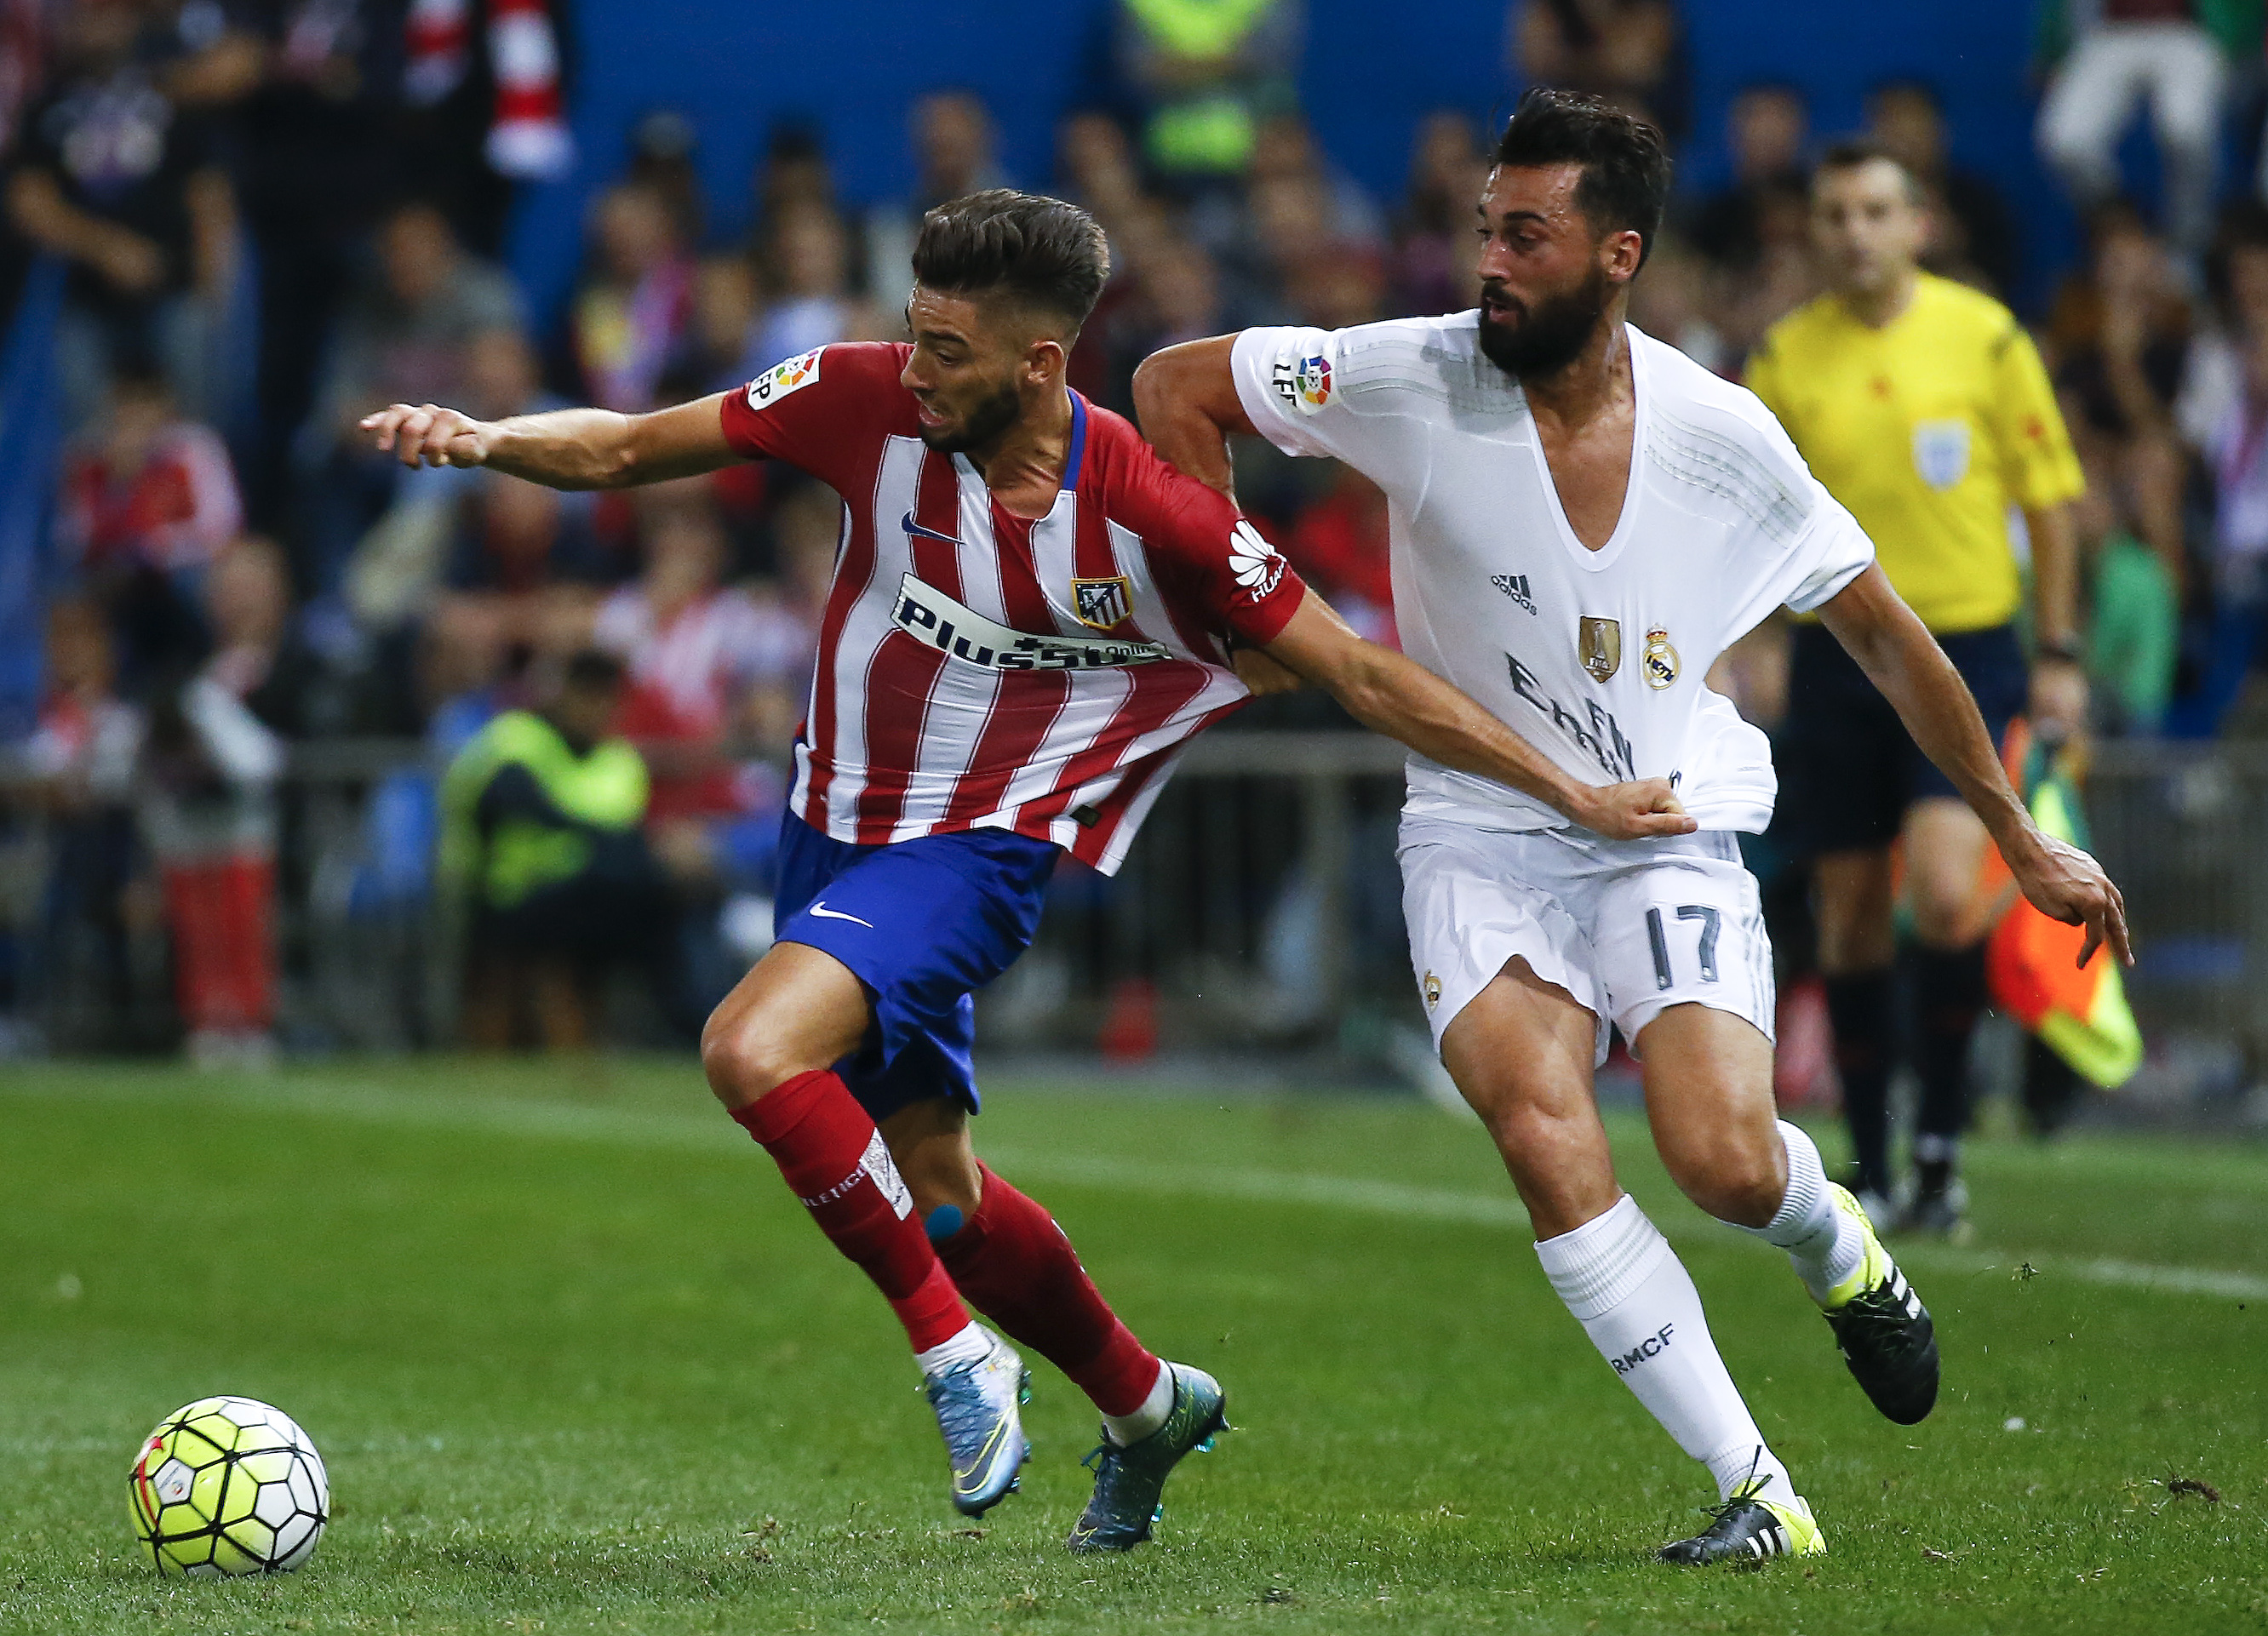 Atletico Madrid's Yannick Carrasco (L) is challenged by  Real Madrid's Alvaro Arbeloa during their Spanish first division derby soccer match at the Vicente Calderon stadium in Madrid, Spain, October 4, 2015.   REUTERS/Andrea Comas  - RTS30DF